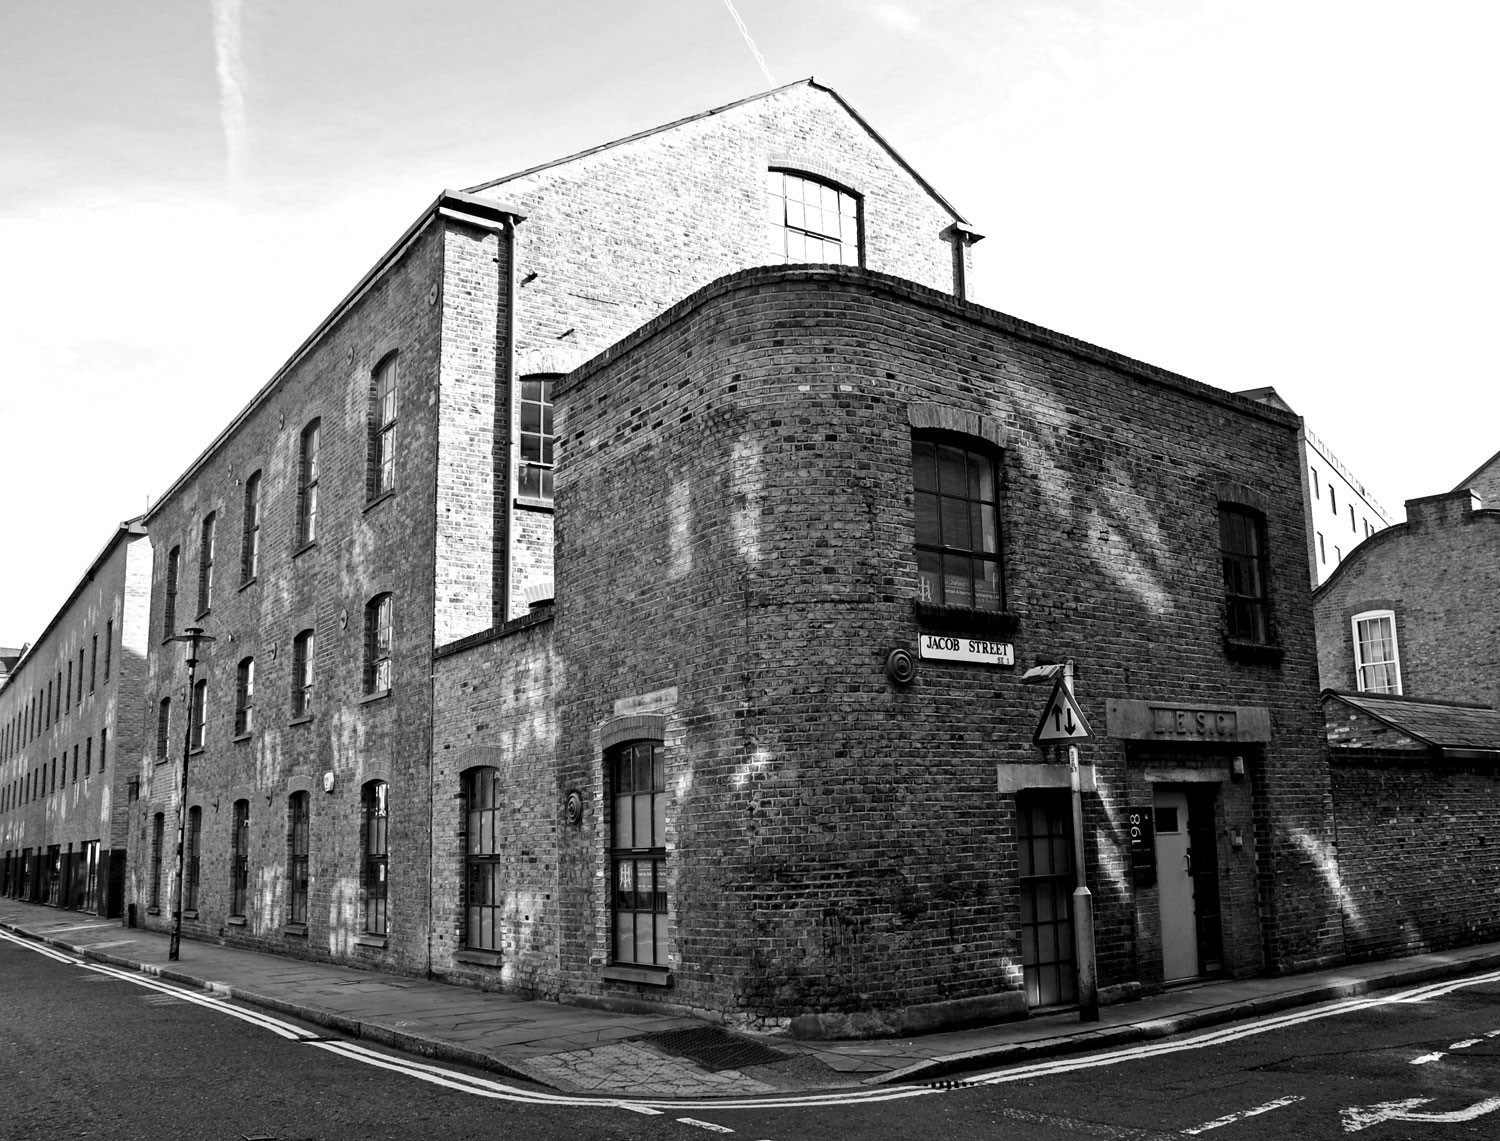 Jacob Street between Mill Street & George Row Dockhead  X.jpg